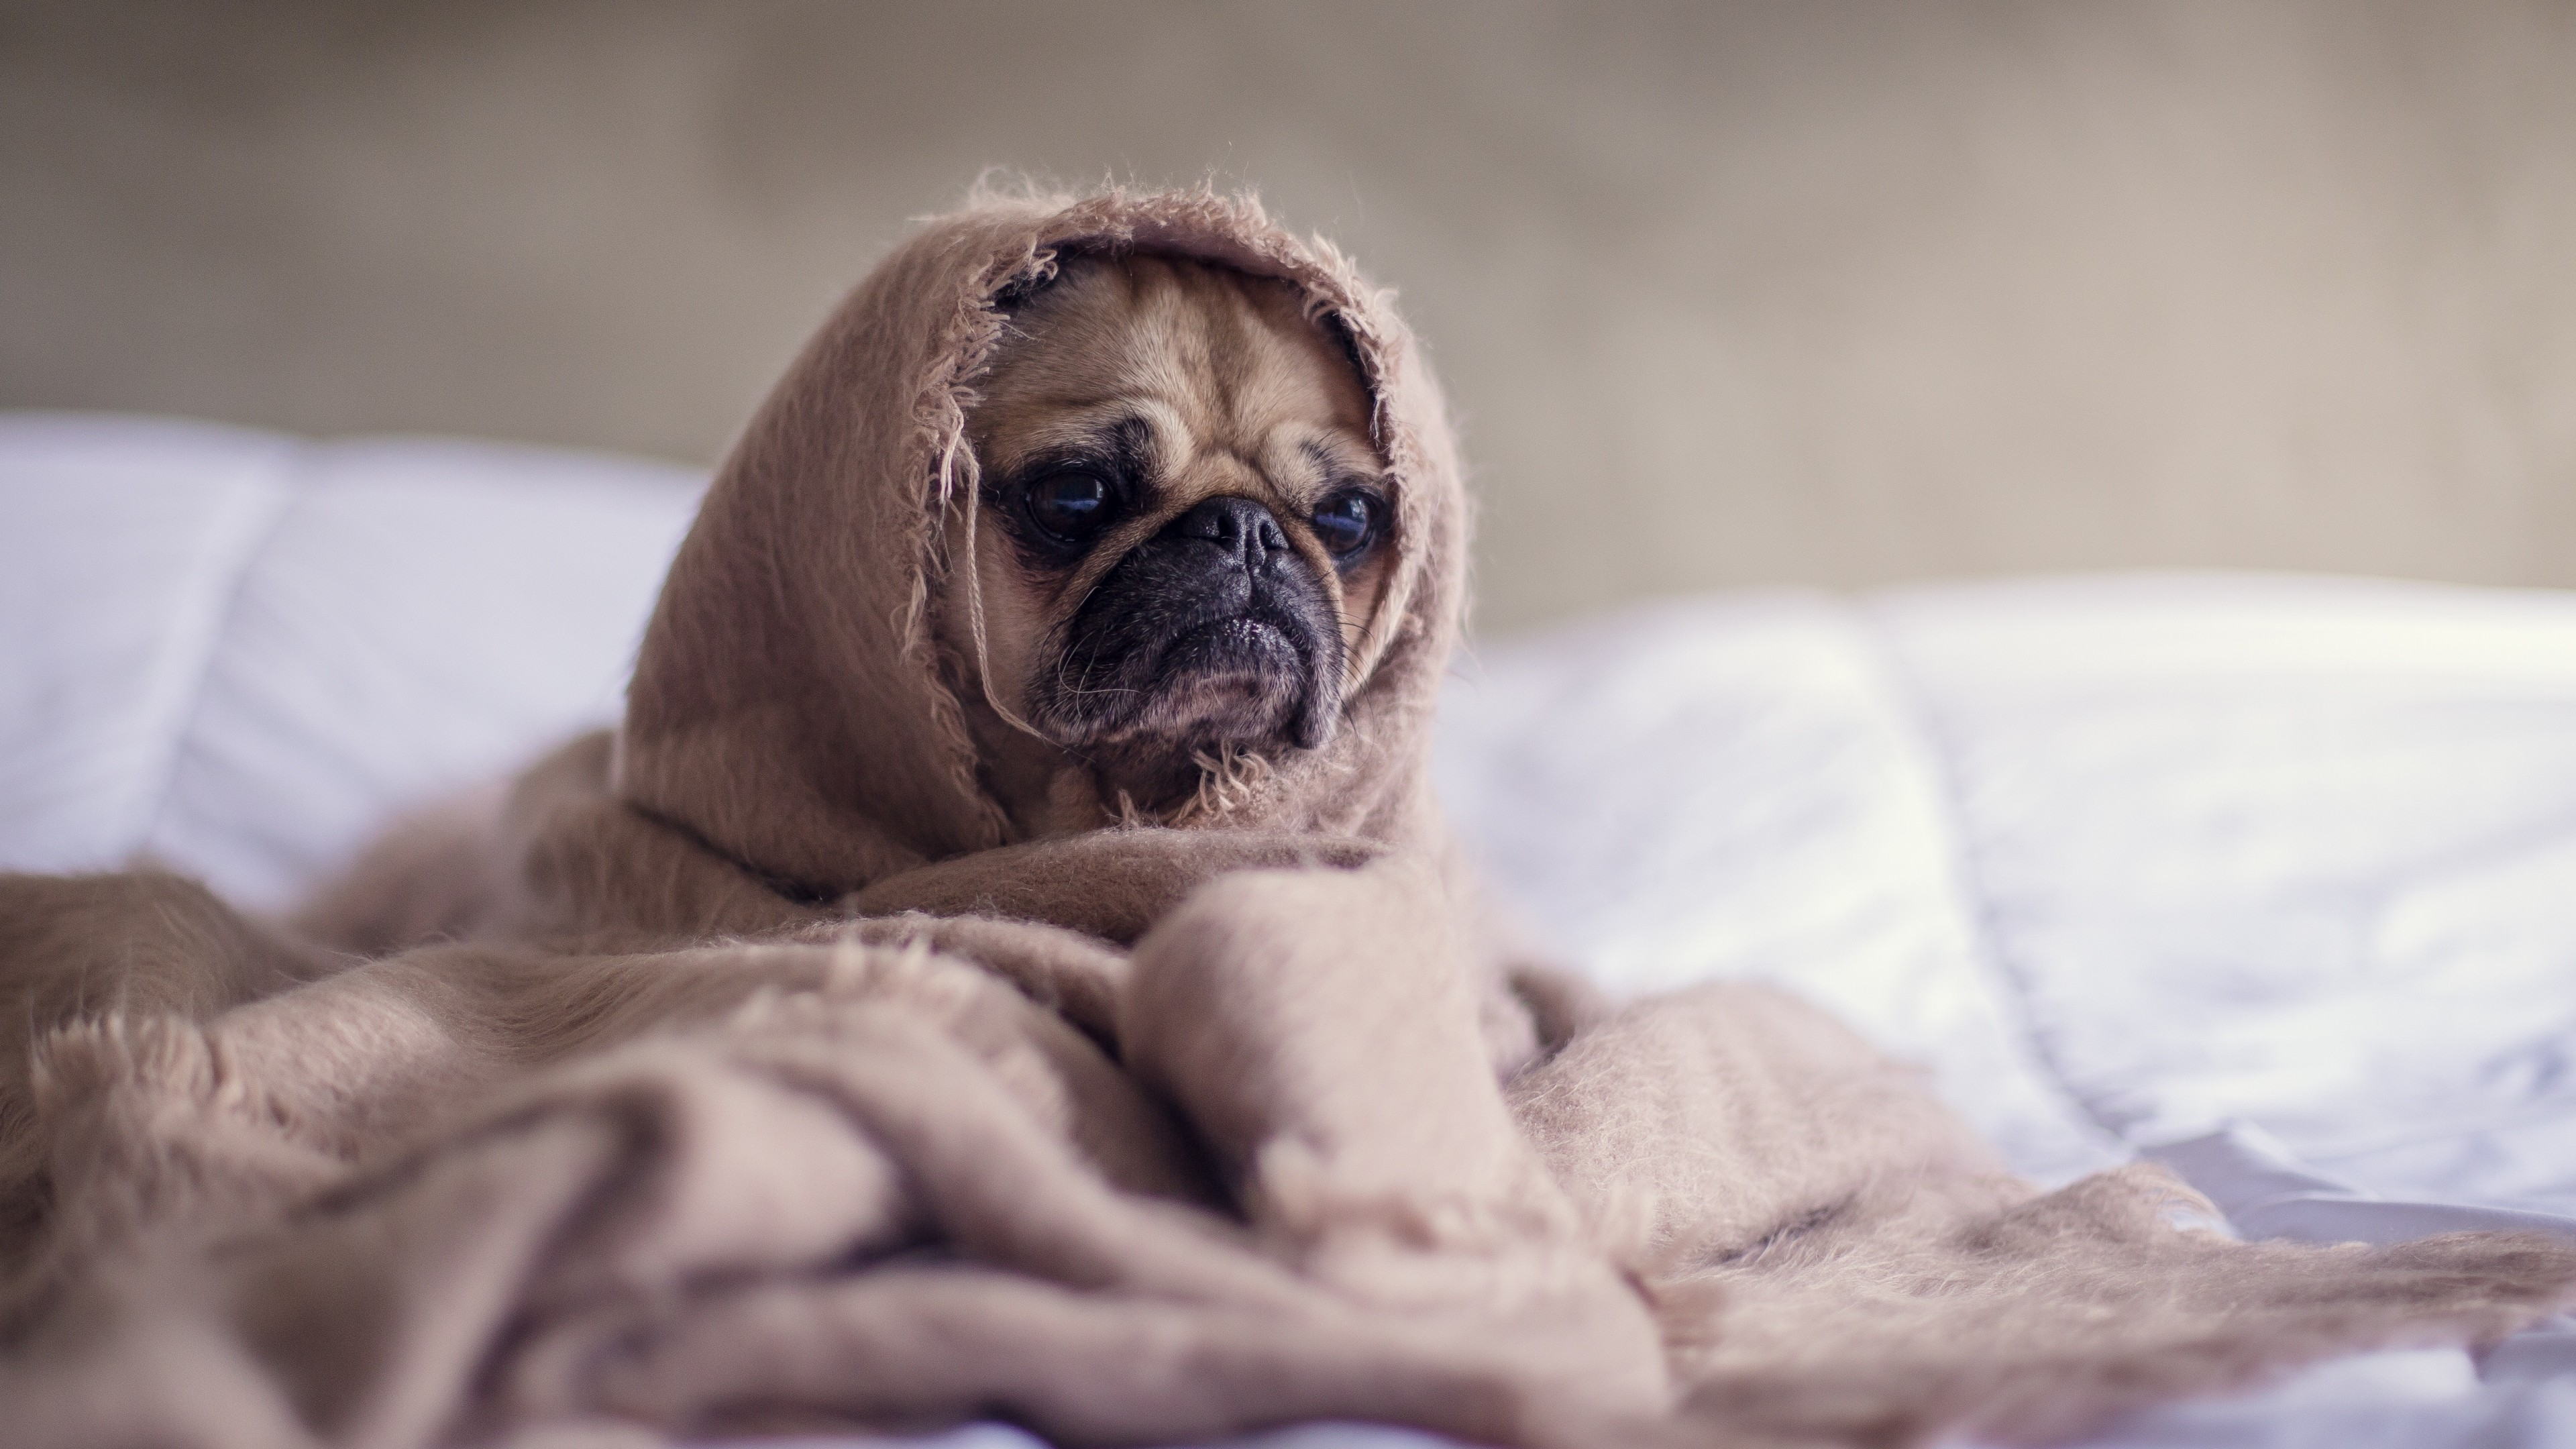 pug puppy wallpaper (66+ images)